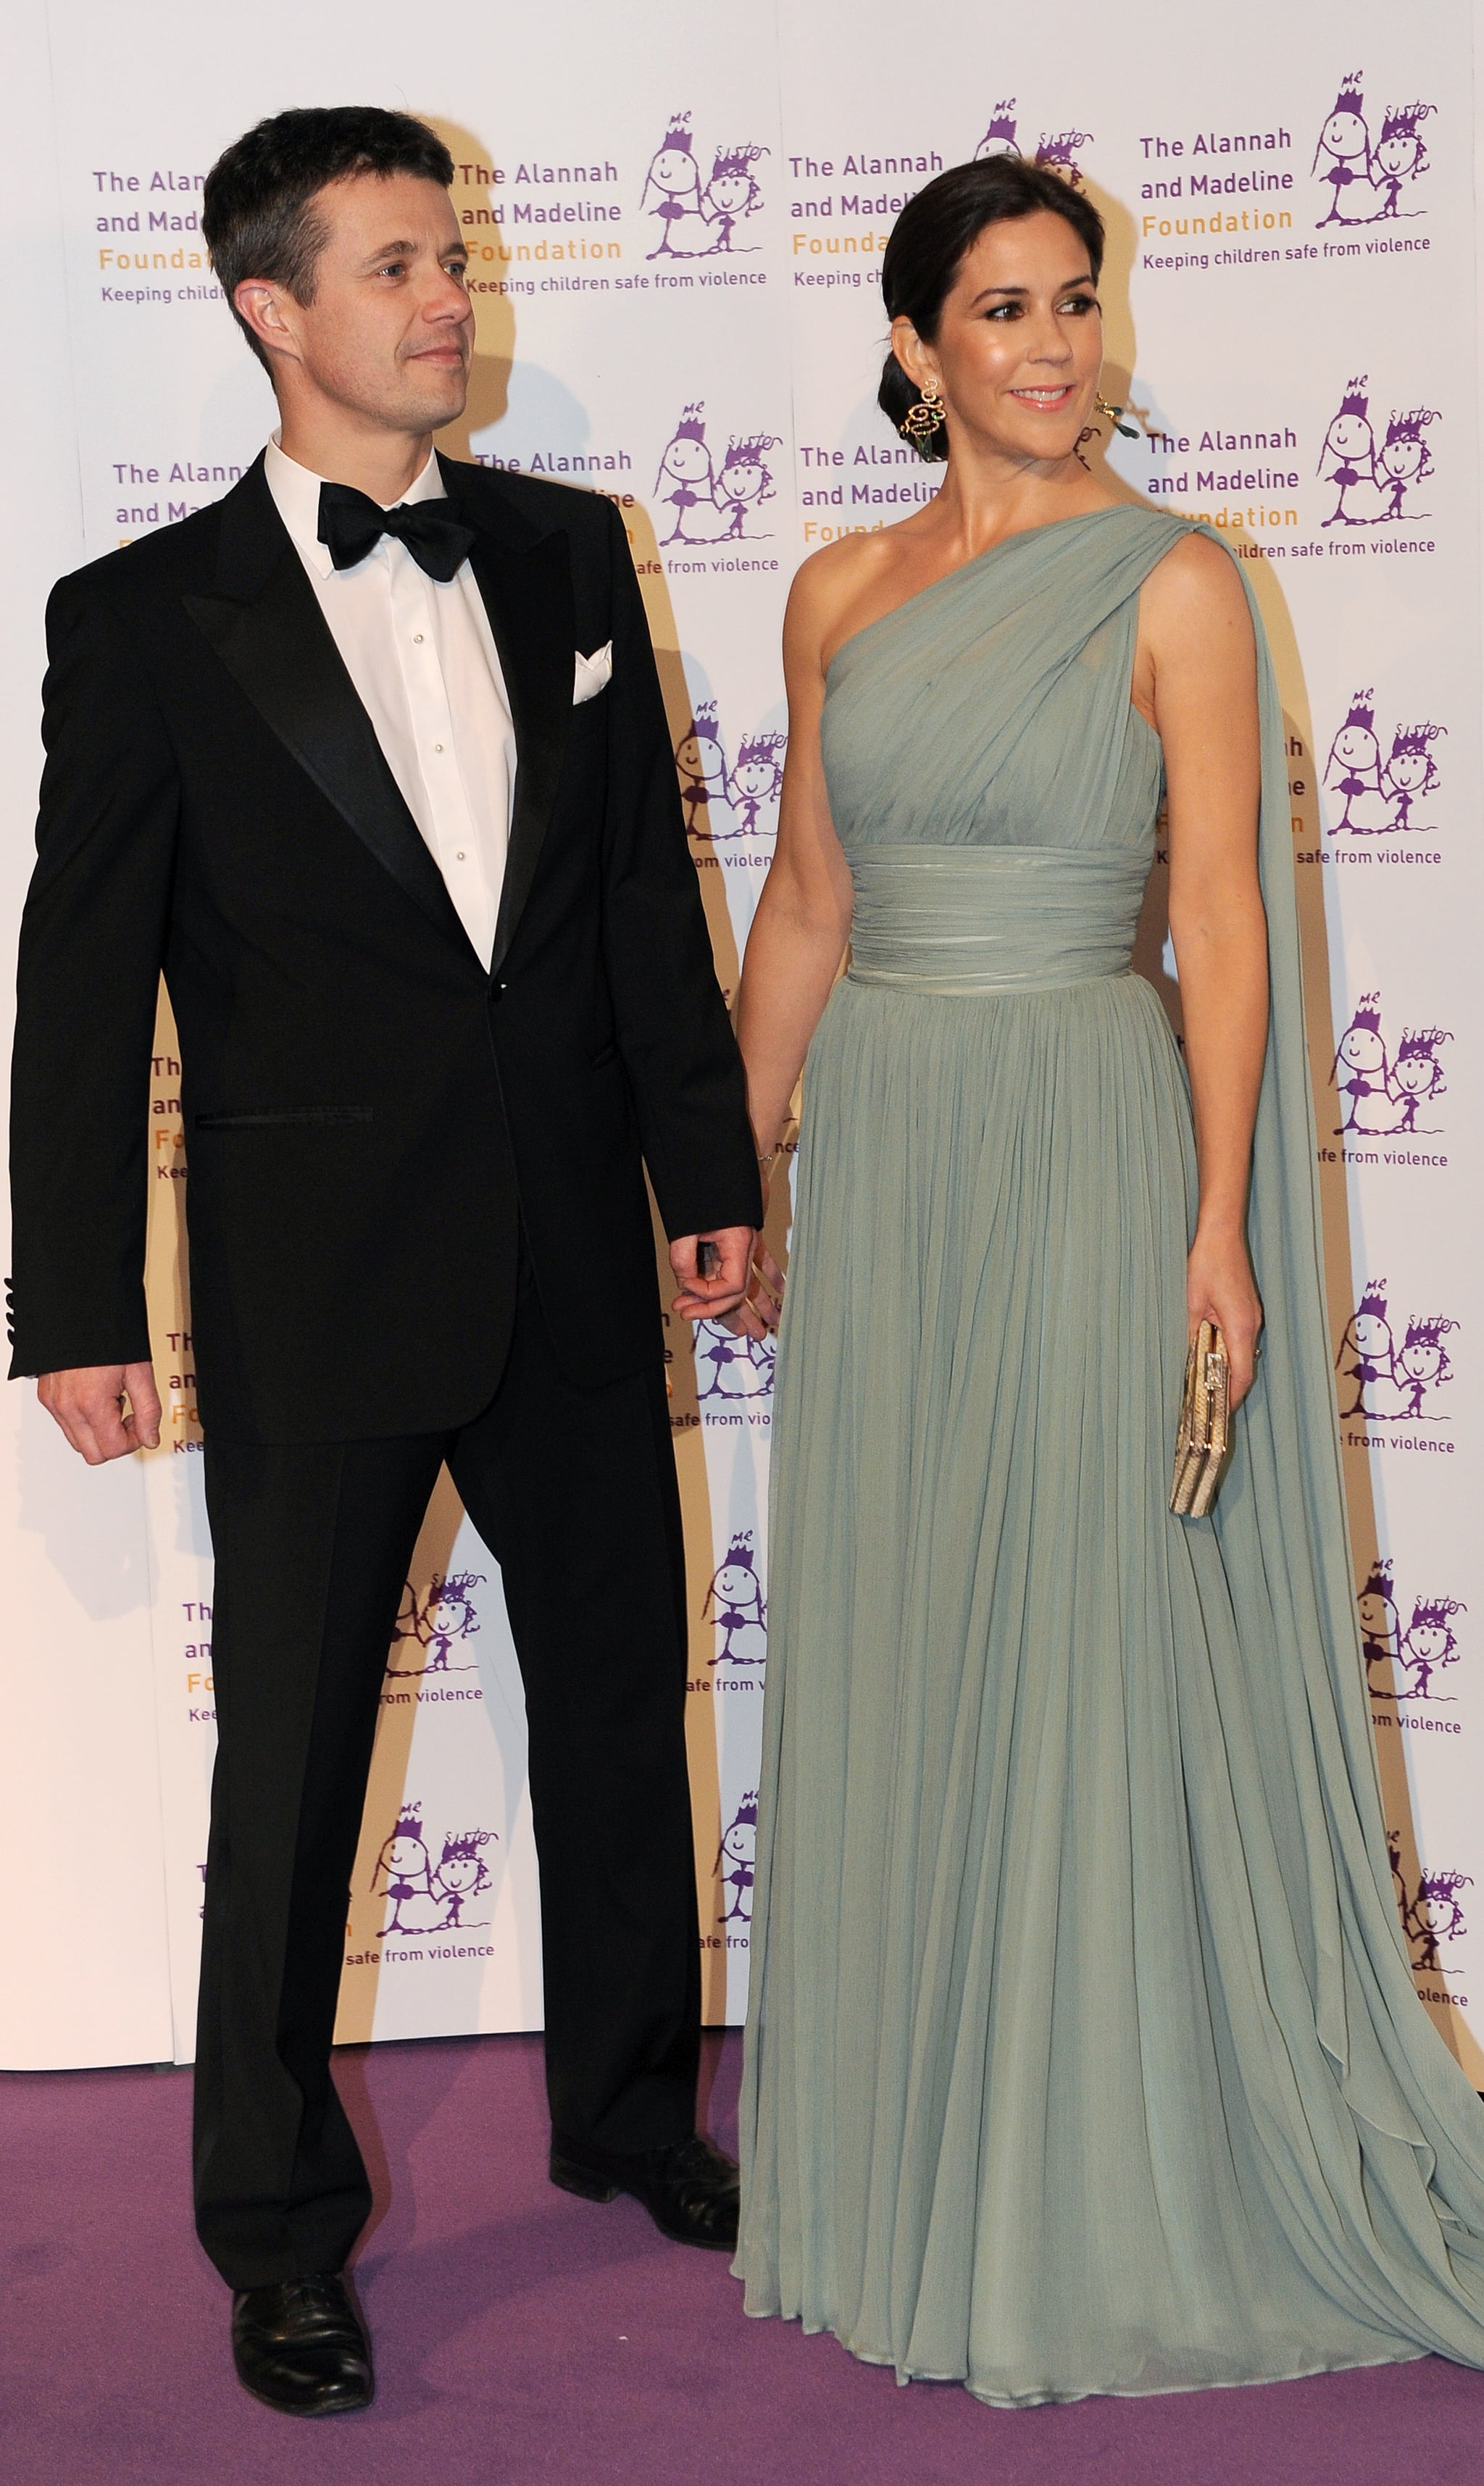 Princess Mary Starry Starry Night Dress Pictures With Prince ...